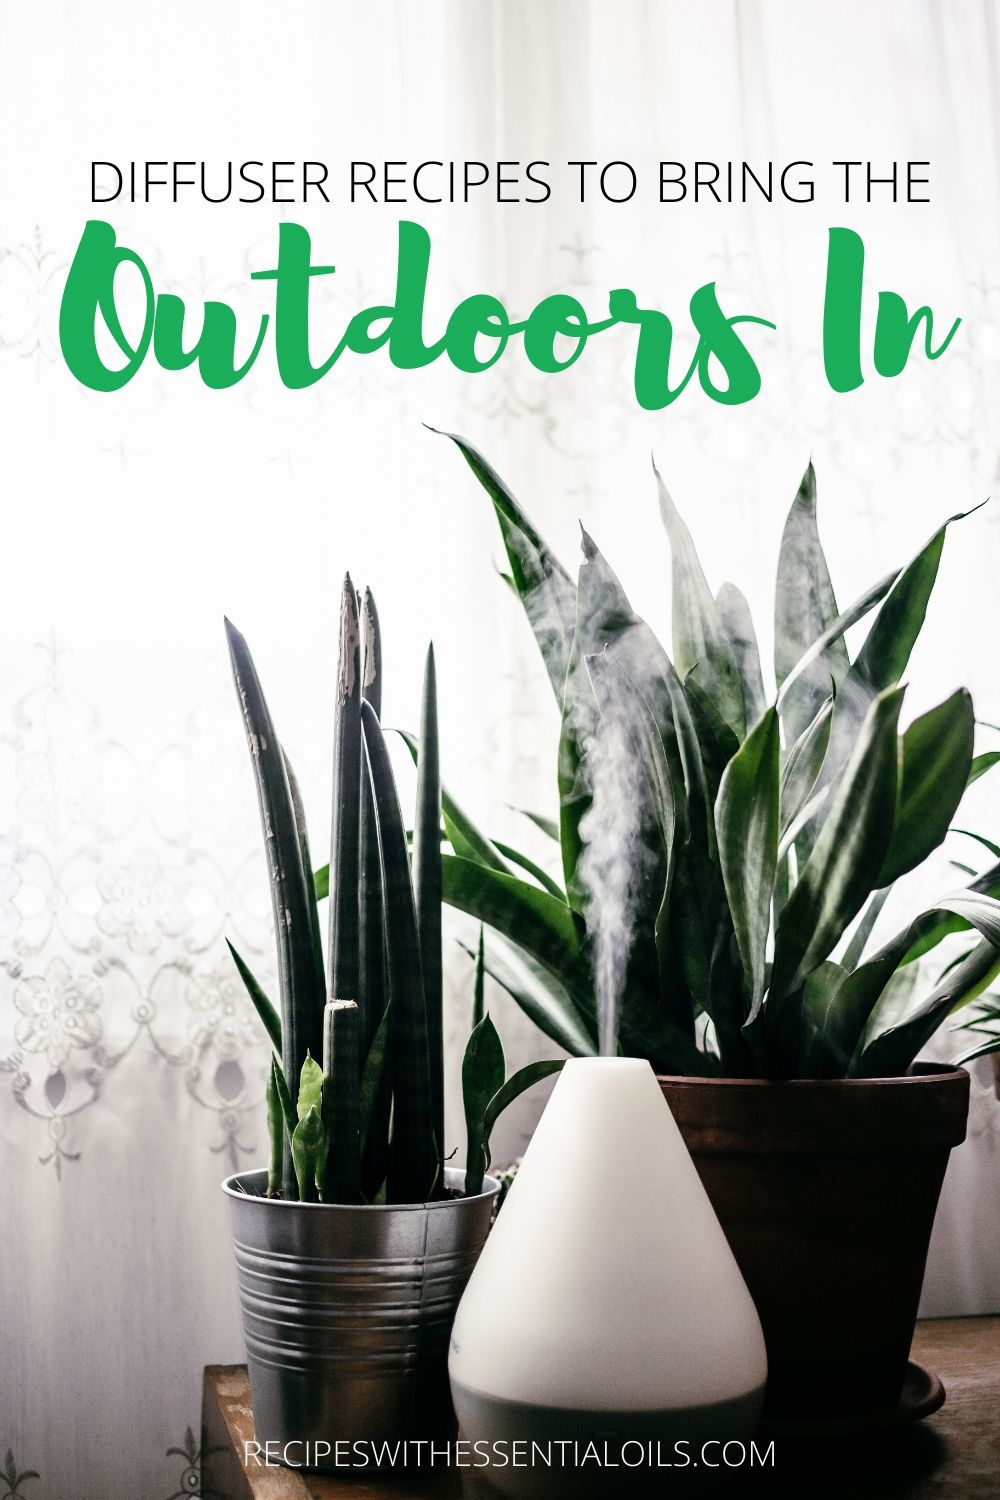 diffuser recipes to bring the outdoors in